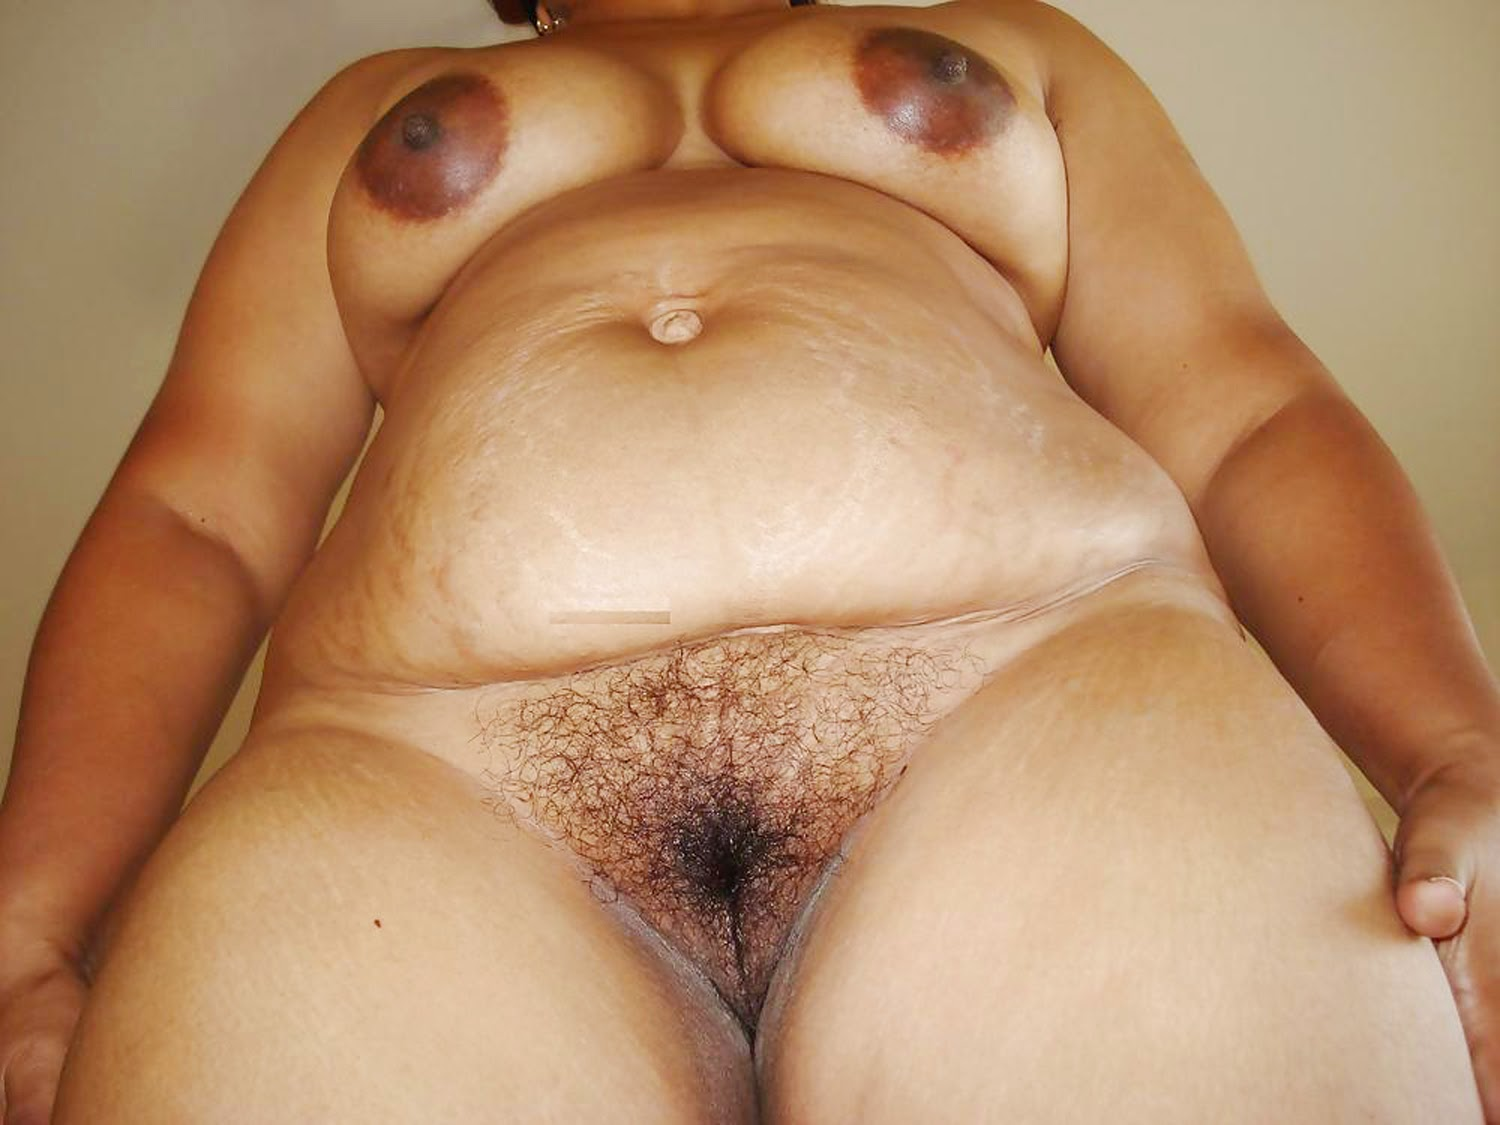 Best mallu nude photos me!